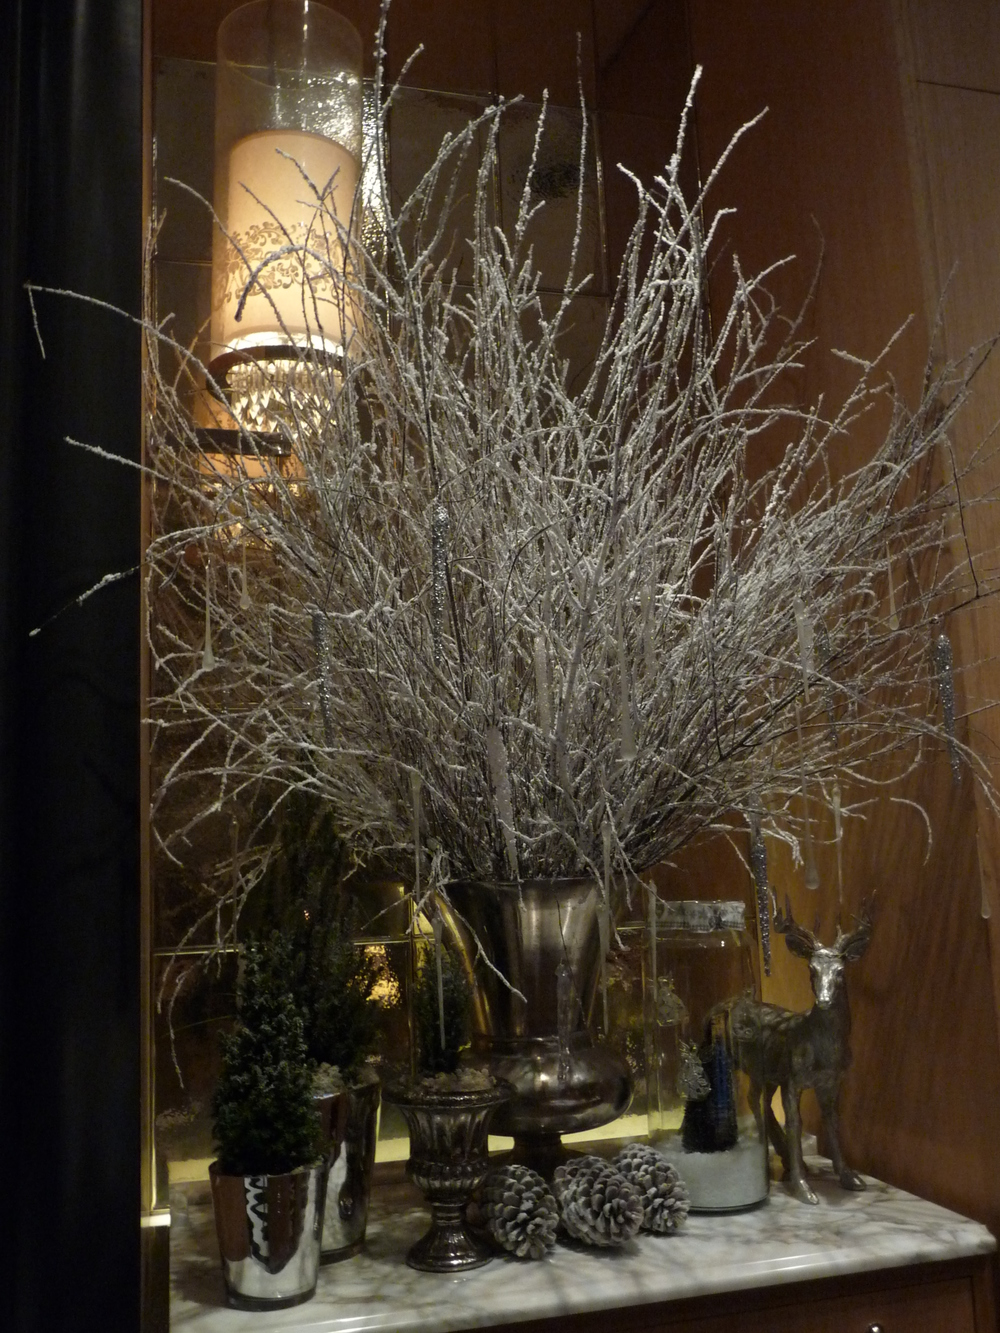 Beautiful Christmas arrangements of natural twigs sprayed white with decorations hanging from them